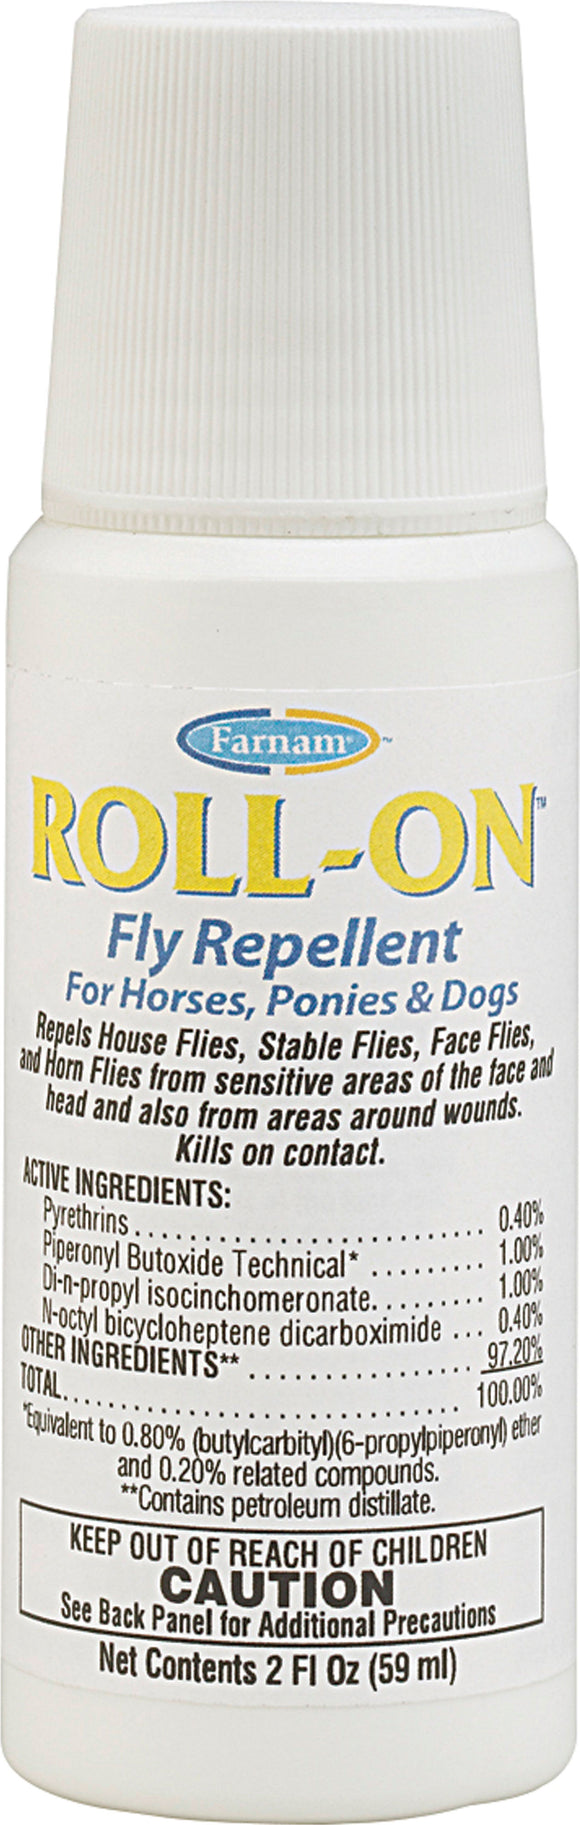 Farnam Companies Inc - Roll-on Fly Repellent For Horses Ponies & Dogs